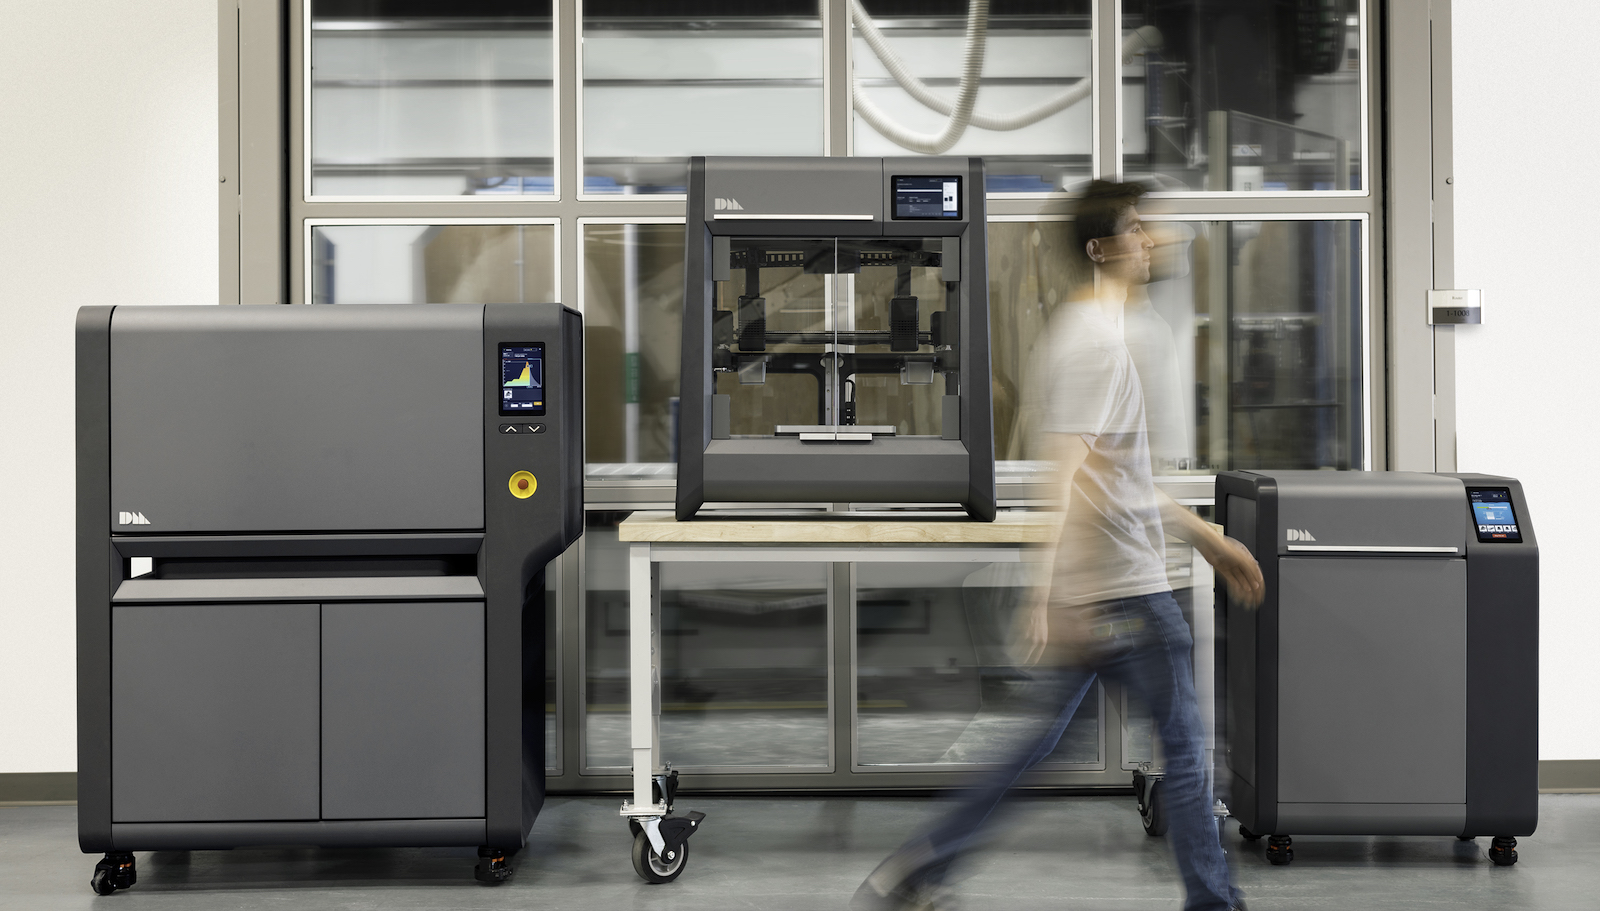 Studio System 3D printers were designed by Desktop Metal to be implemented in office environments.